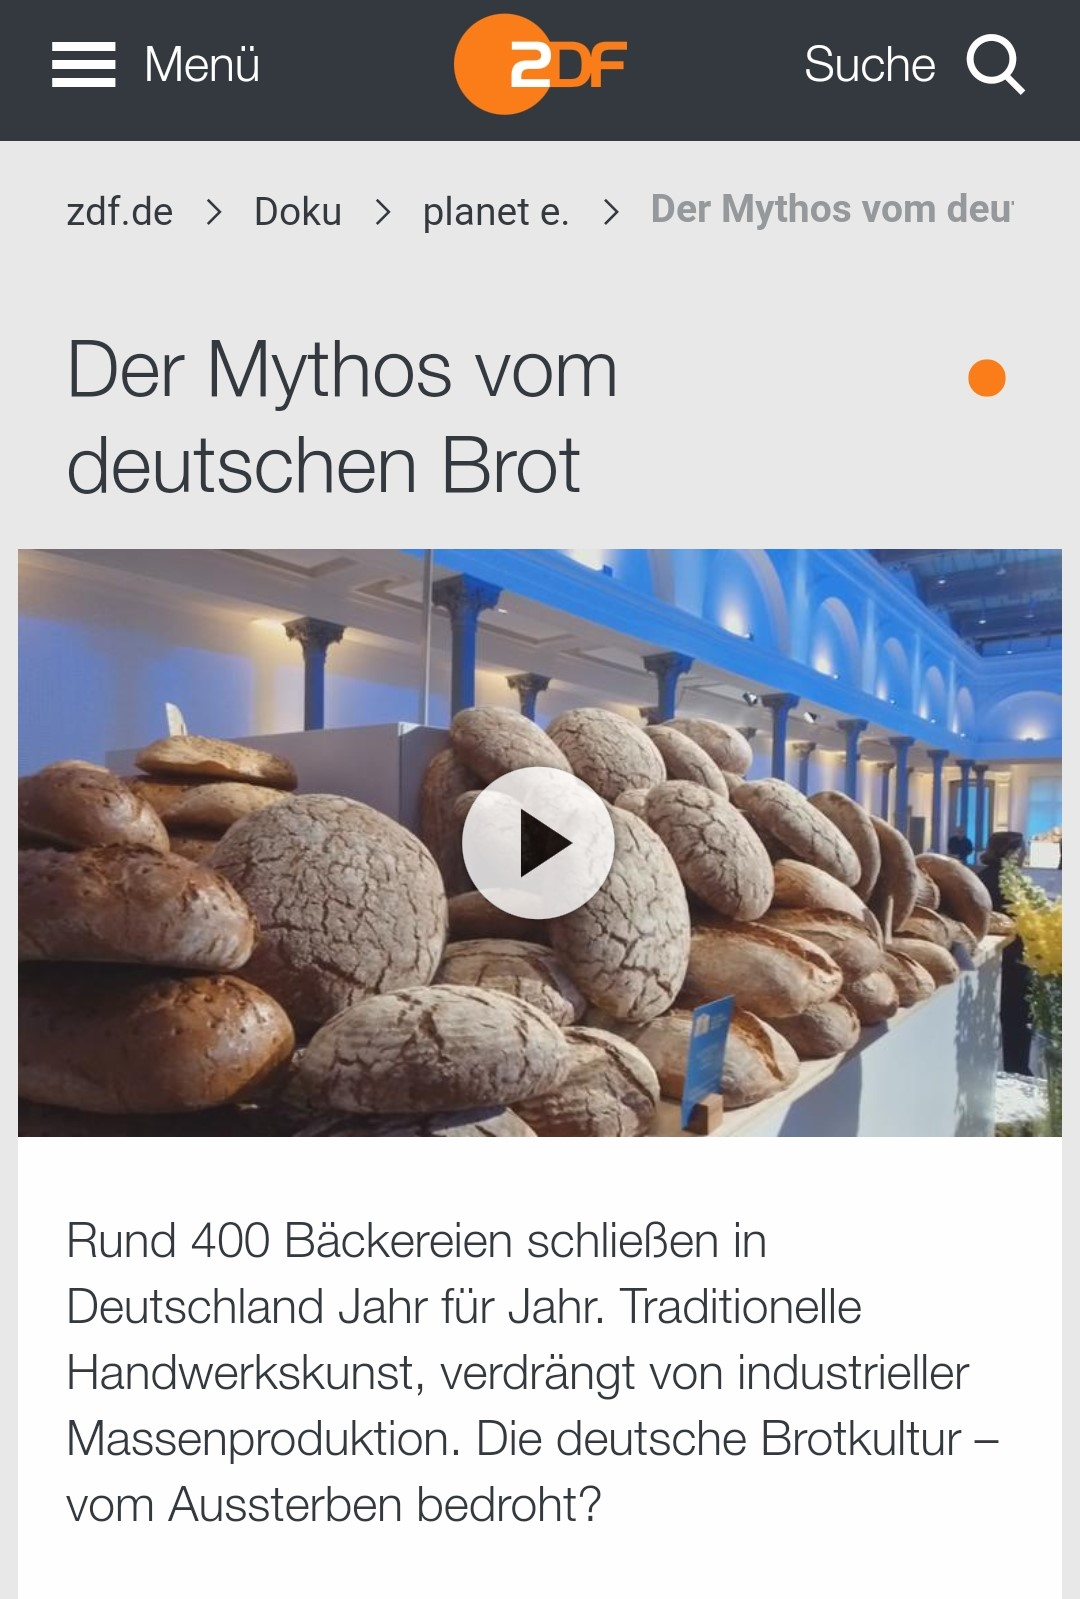 Brot – bei uns kein Mythos